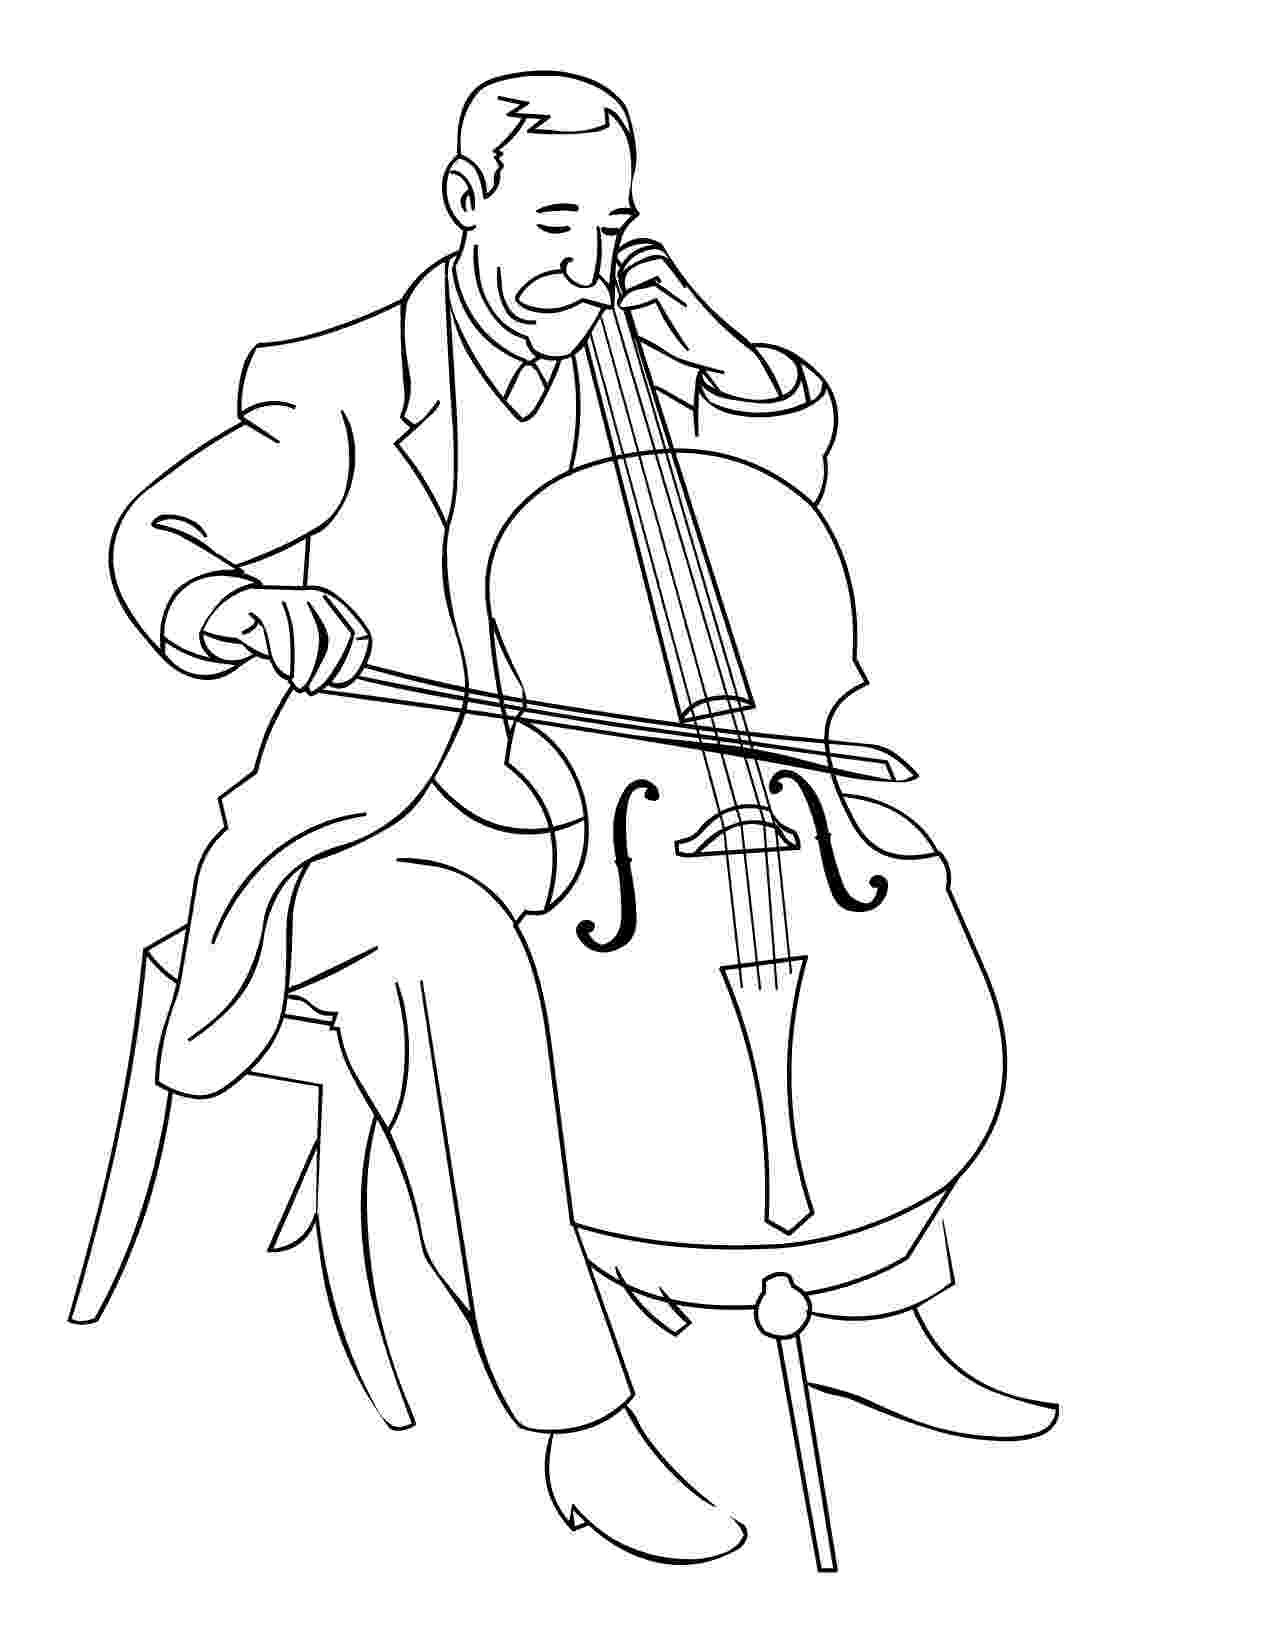 cello coloring page cello coloring pages kidsuki page cello coloring